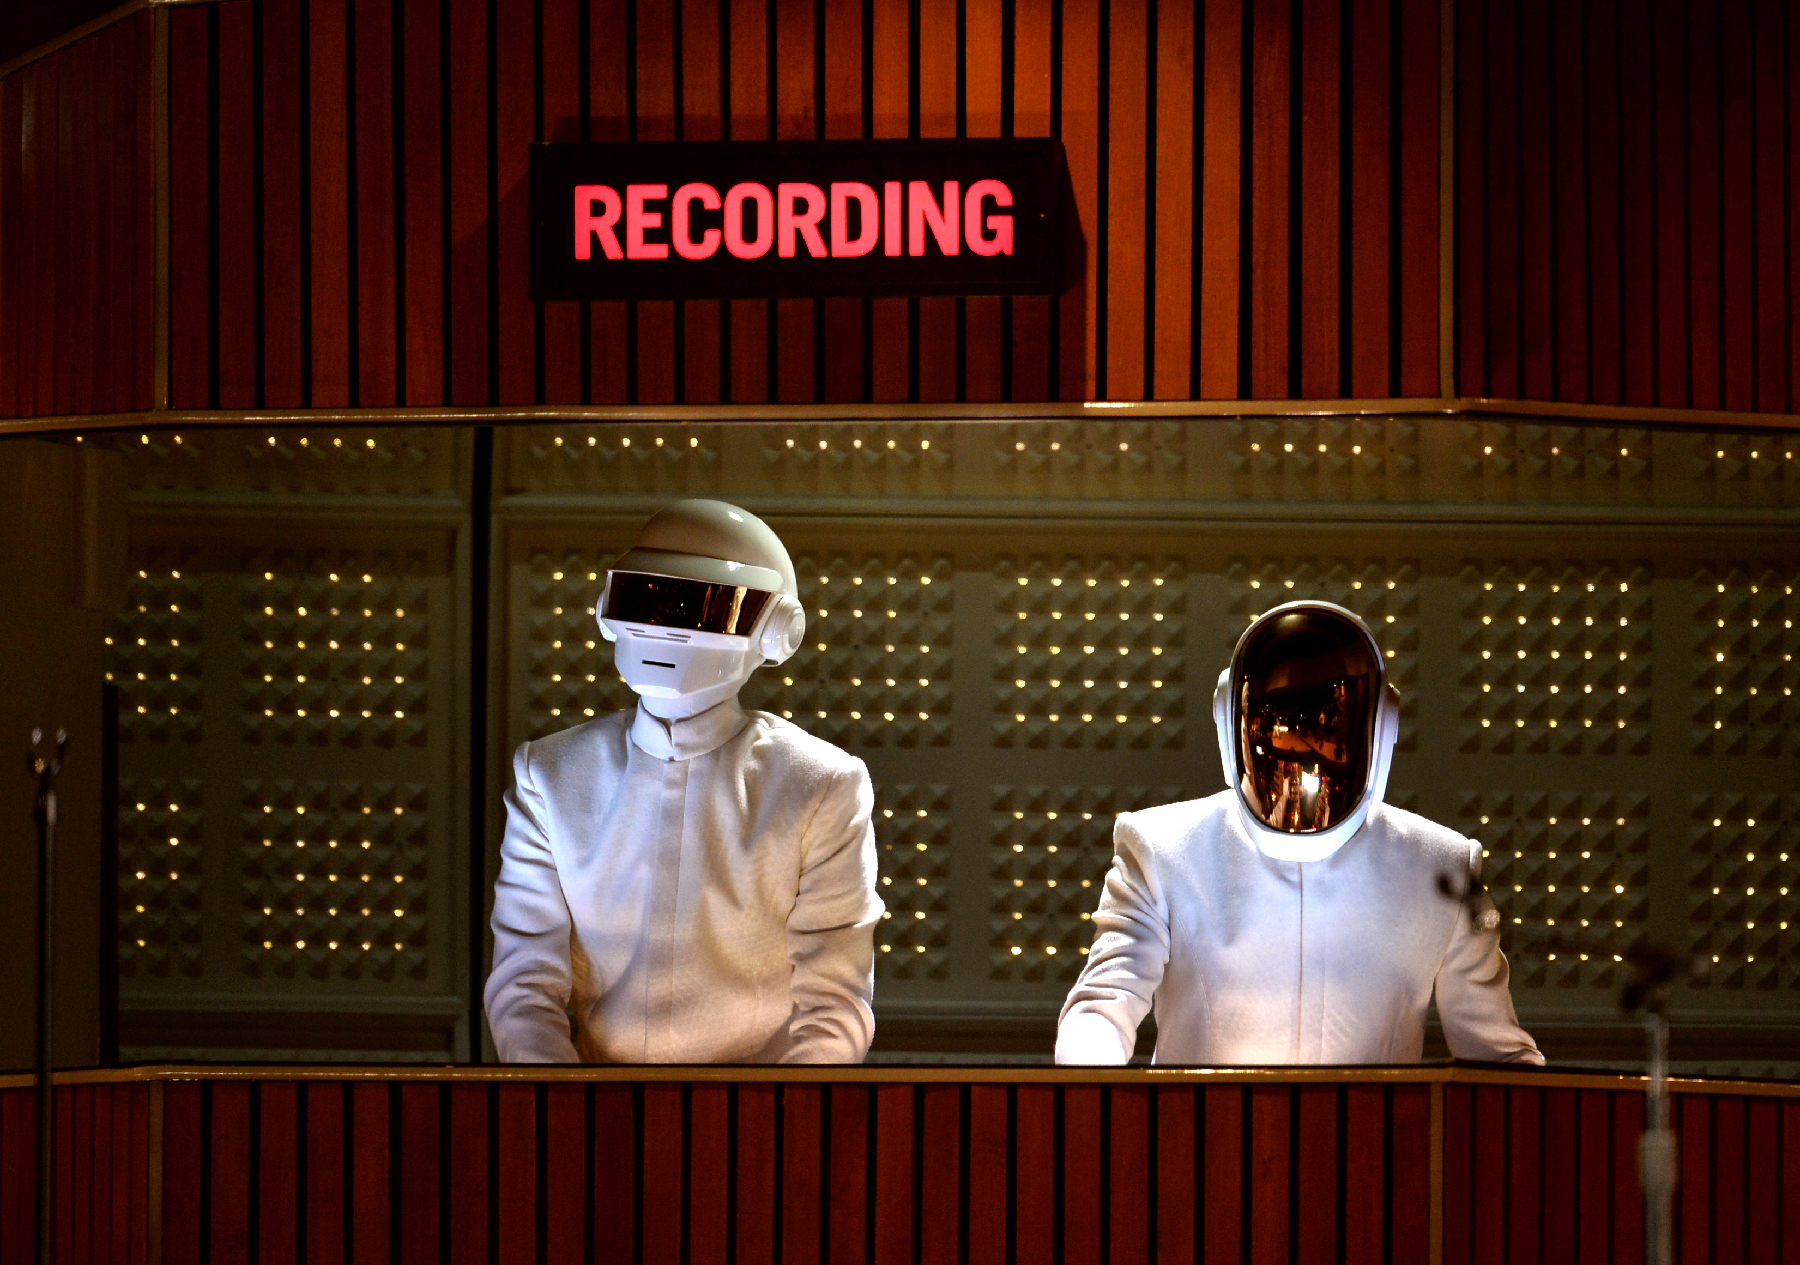 Daft Punk, Paul McCartney Lead Post-Grammy Sales and Stream Bumps